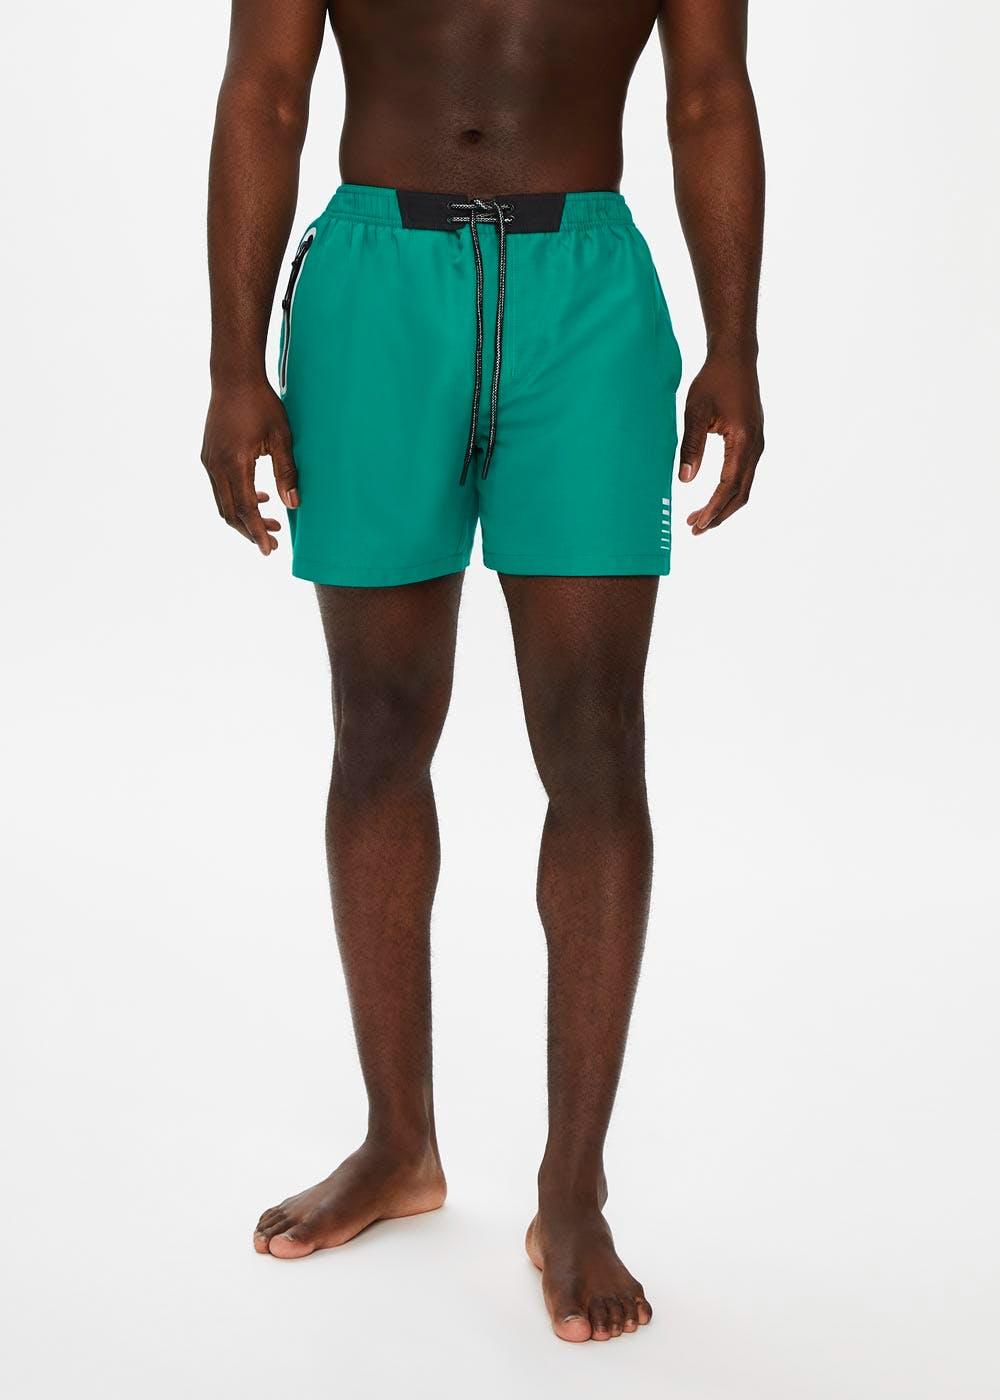 Activewear Tops Clothing, Shoes & Accessories Fast Deliver Turquoise Shorts Shorts Beach Tennis Herren Orange Orange